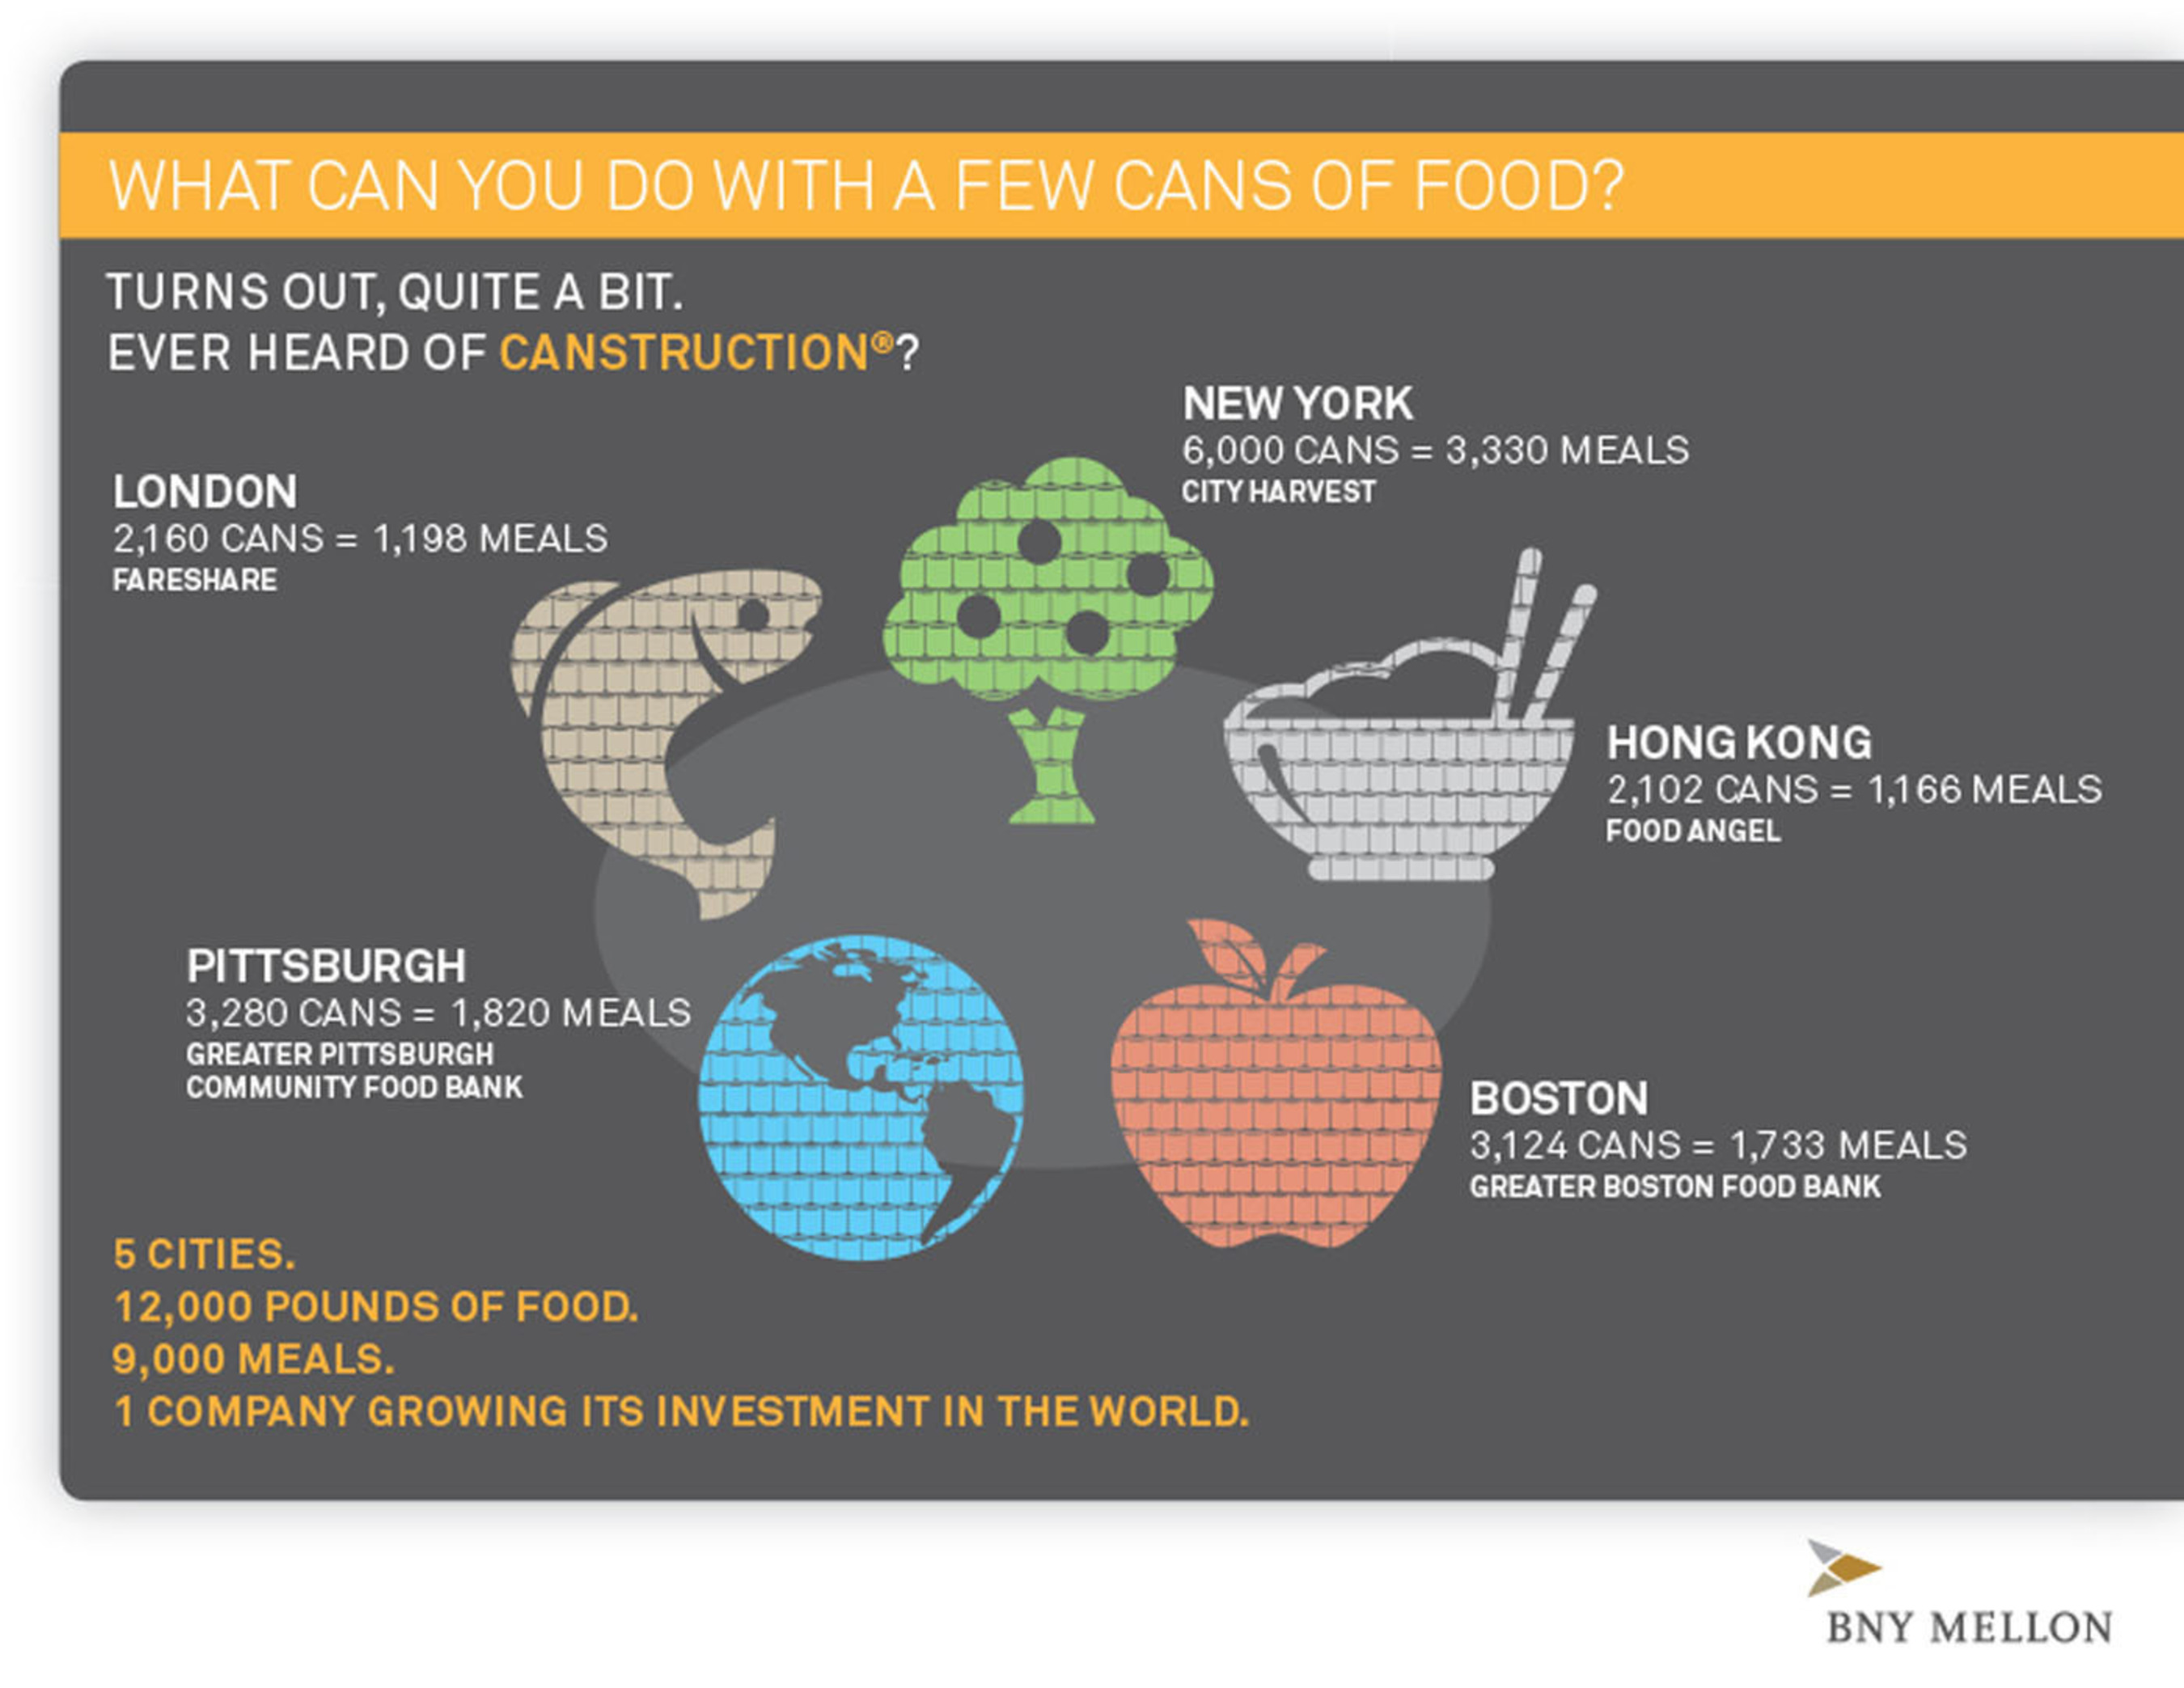 BNY Mellon will be partnering with Canstruction(R) to build giant structures out of canned food in five of its ...